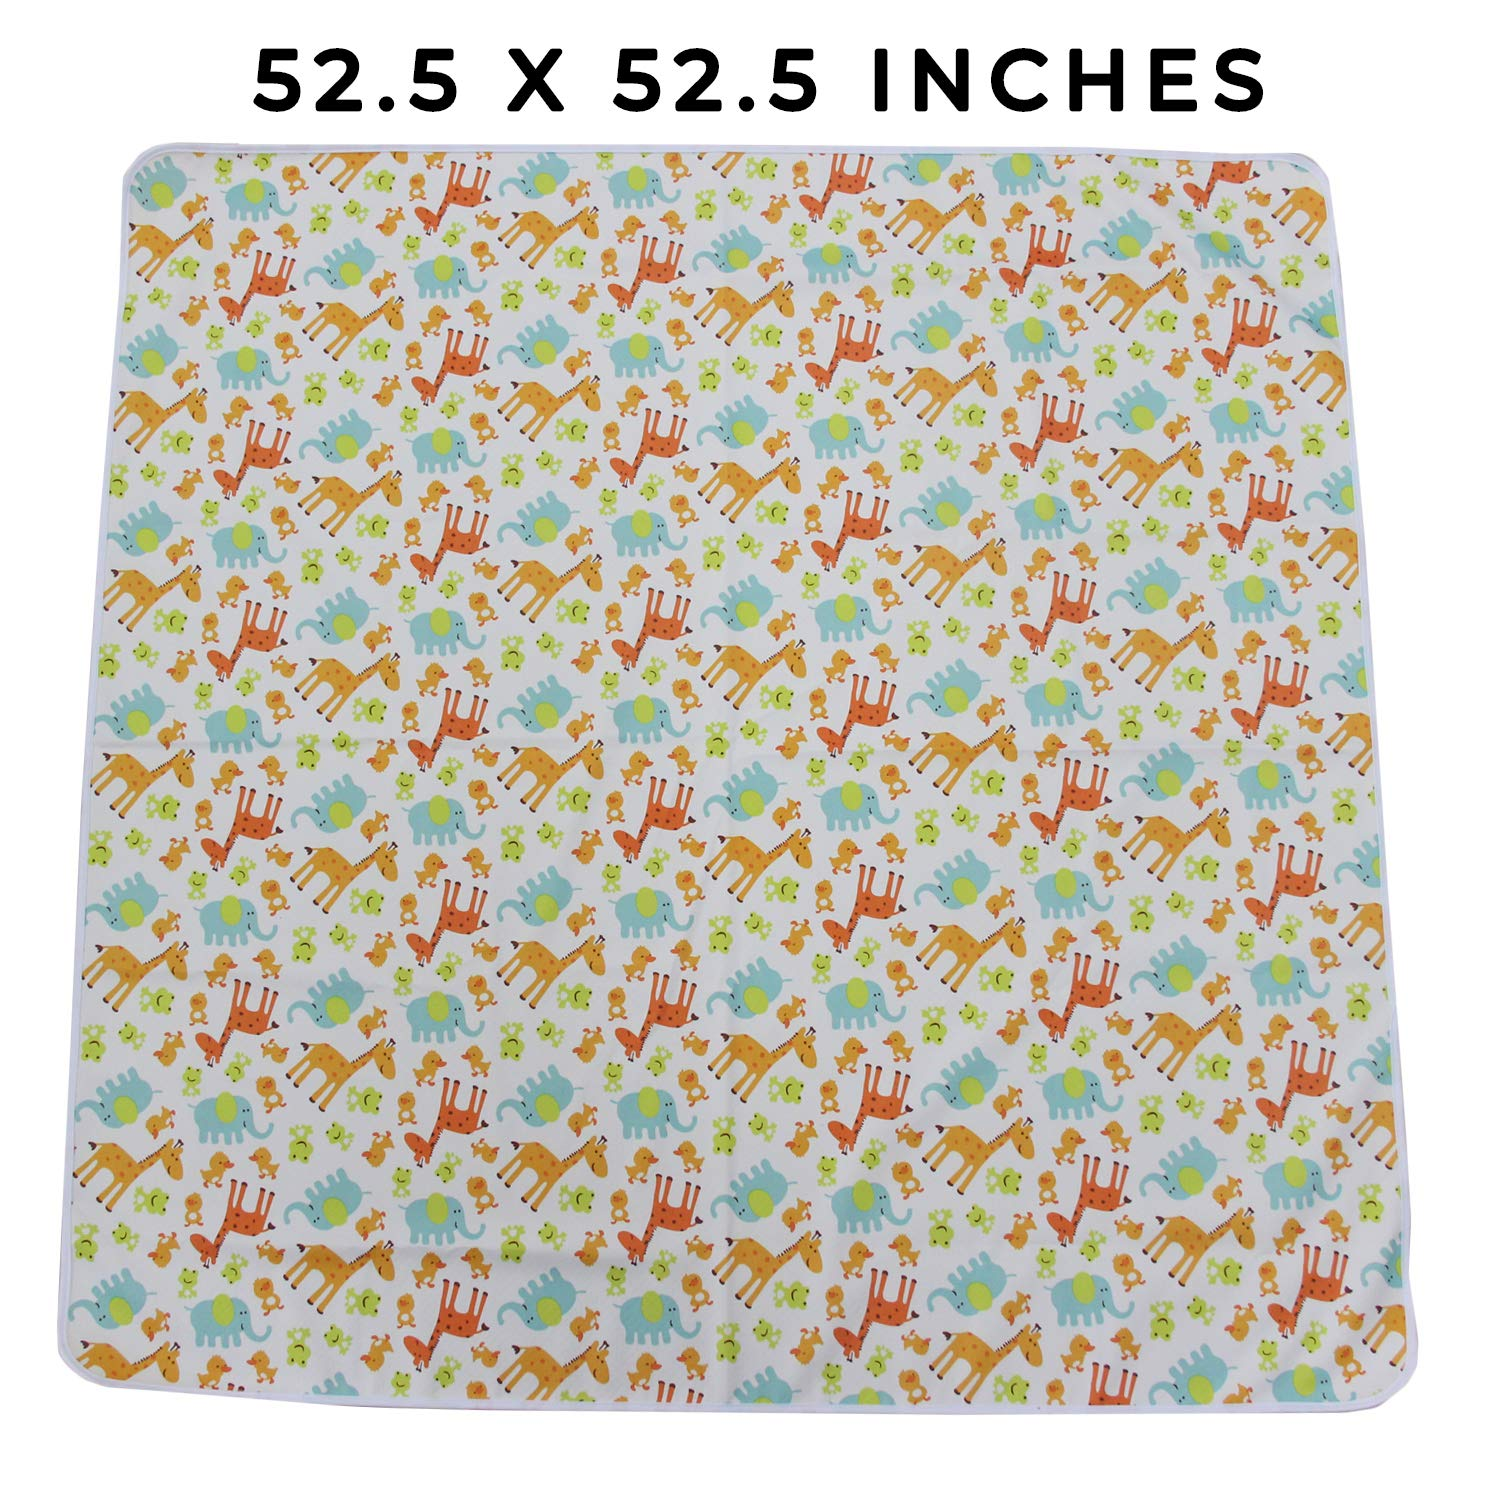 Waterproof Picnic Splat Mat for Under High Chair Non Toxic Machine Washable Great for Play Time 52.5 Extra Large Animals Arts and Crafts Anti Slip